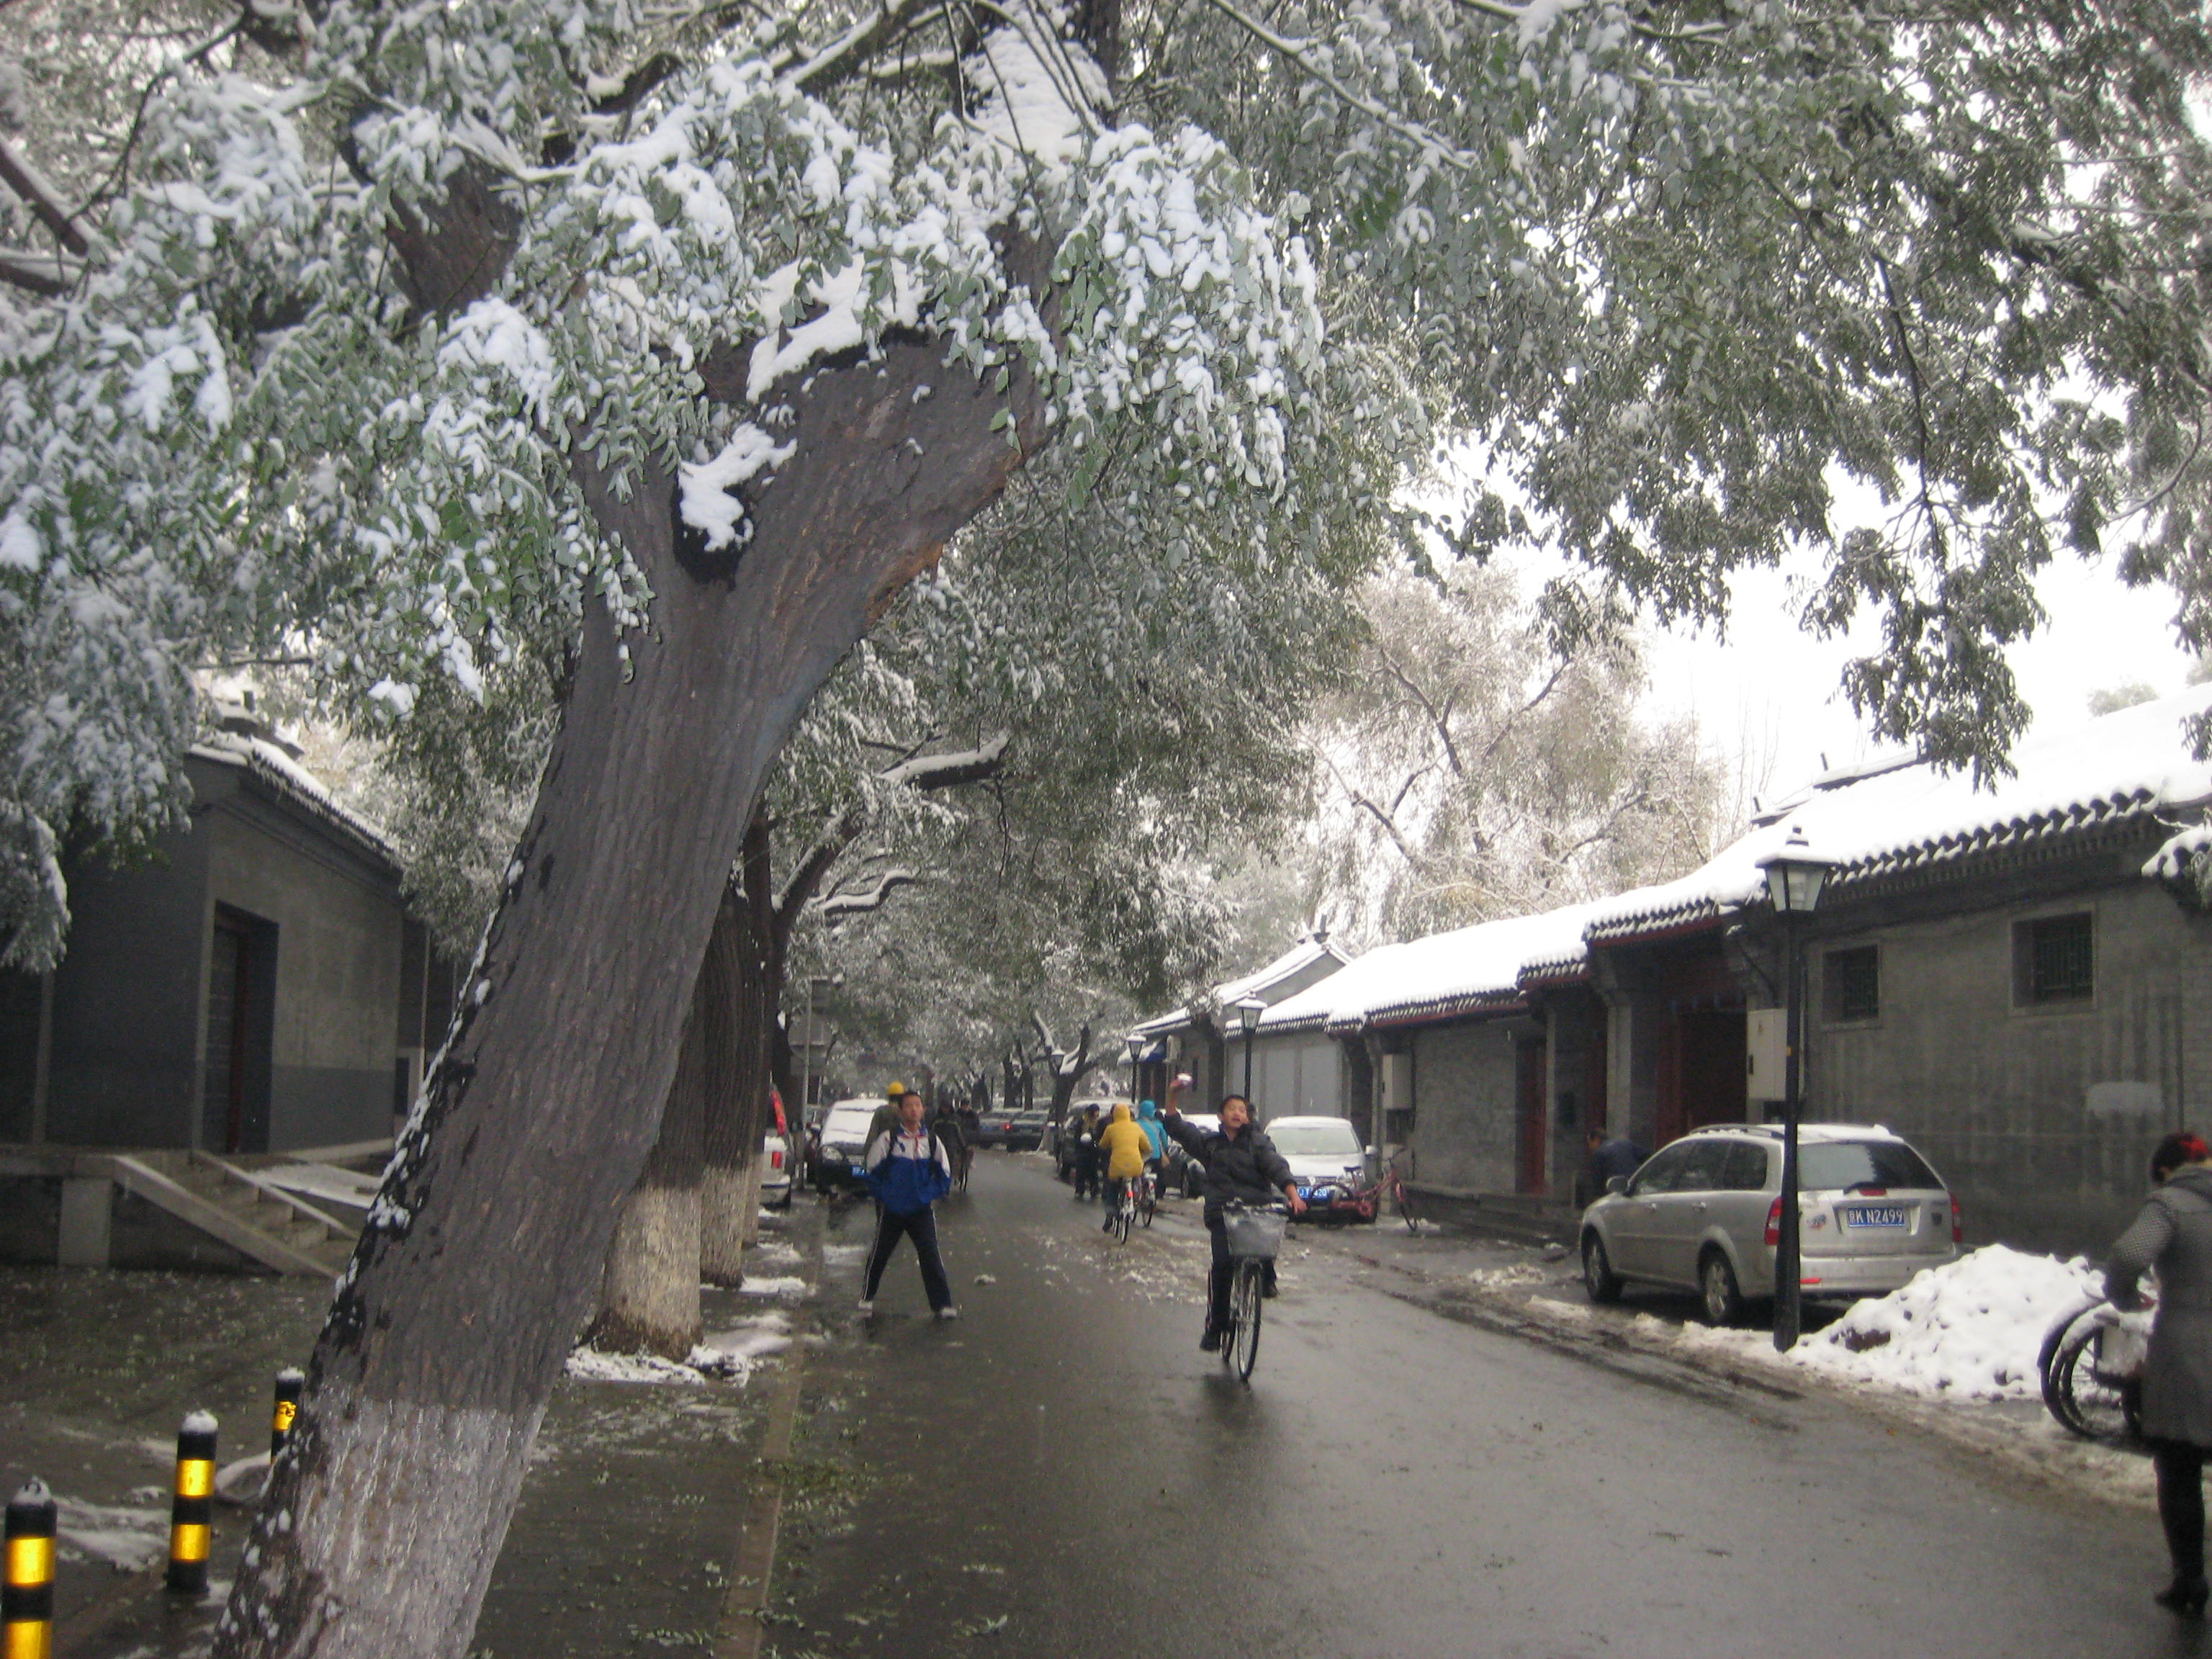 hutong in the snow